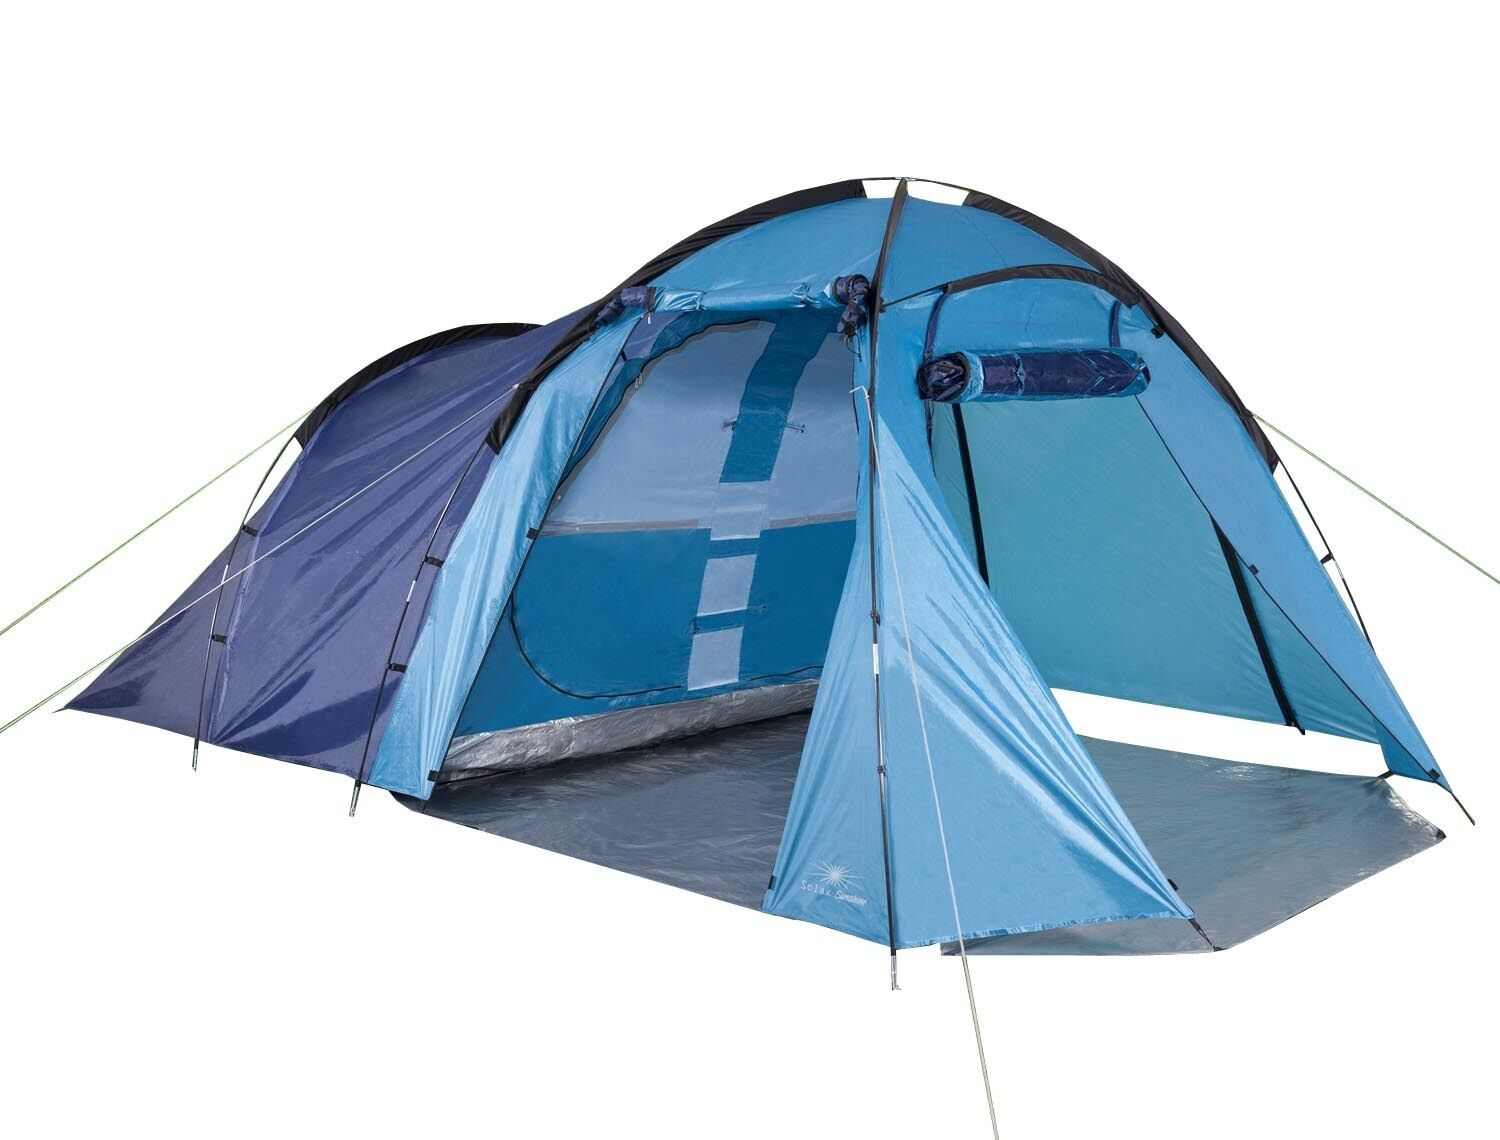 4 Persons Large Capacity Tent 450x270x185cm Camping Tent Group Tent Family Tent